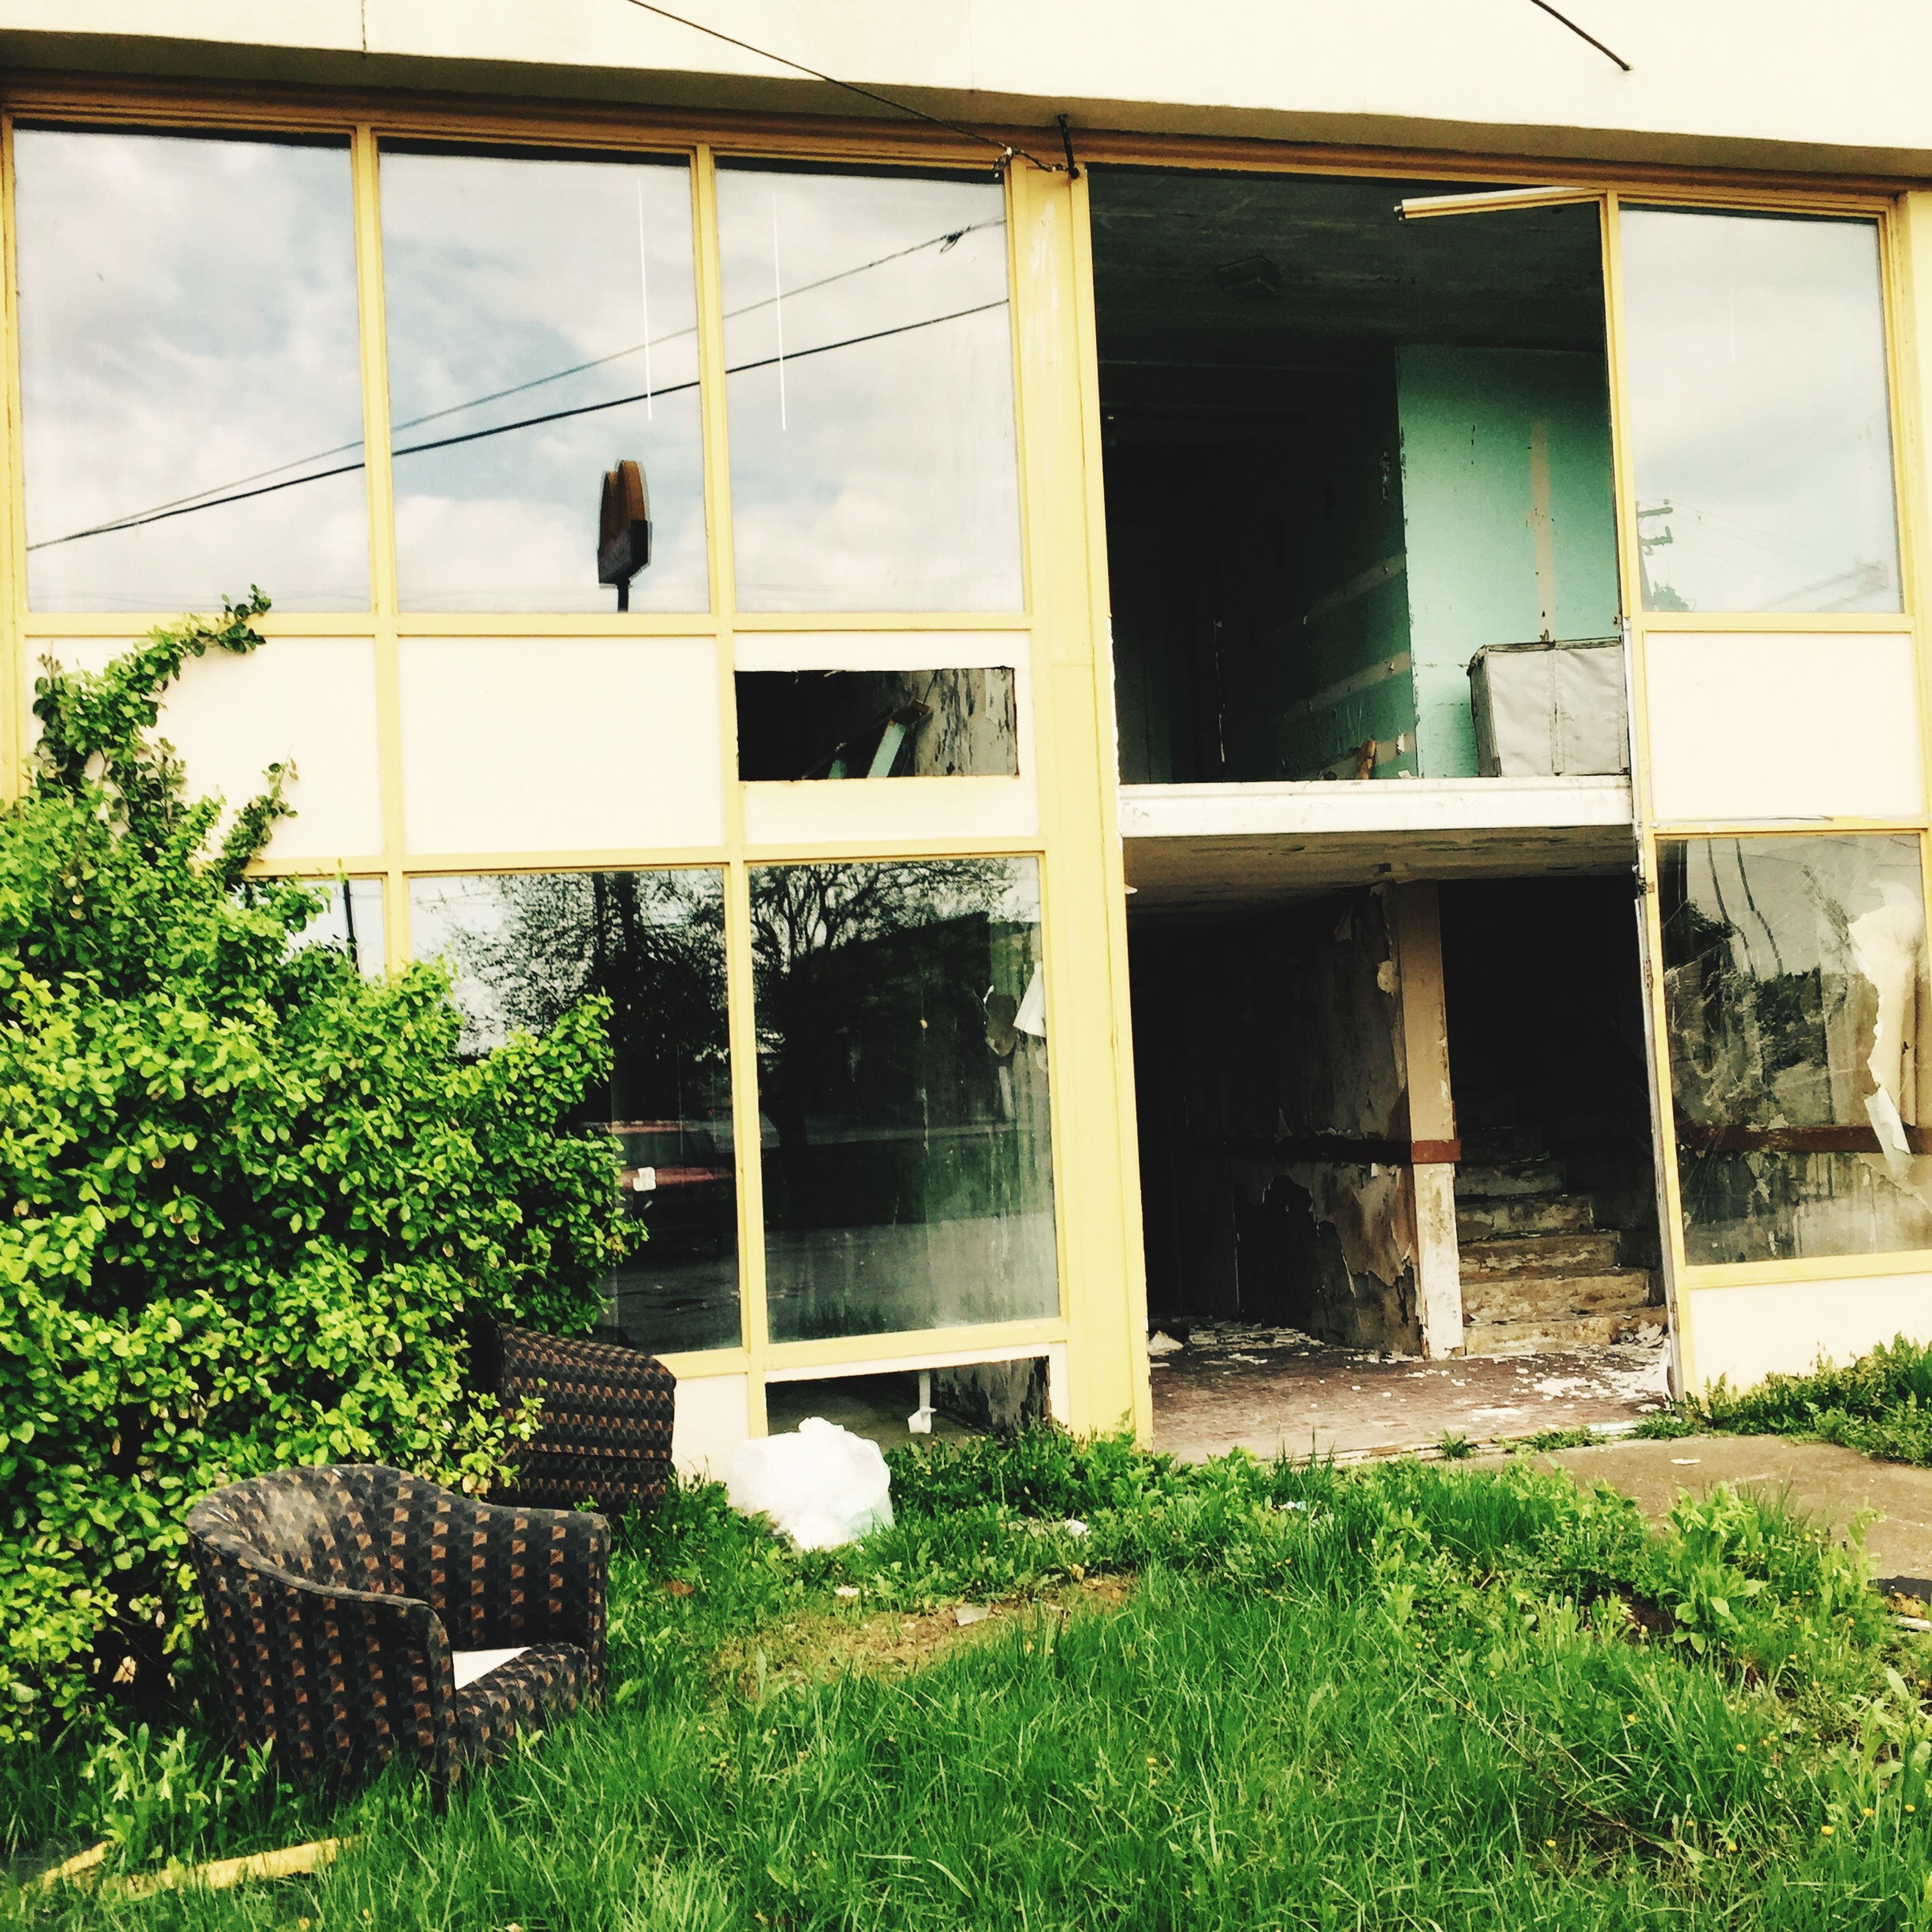 architecture, building exterior, built structure, window, house, residential structure, abandoned, residential building, building, glass - material, grass, plant, low angle view, day, outdoors, damaged, old, transfer print, exterior, no people